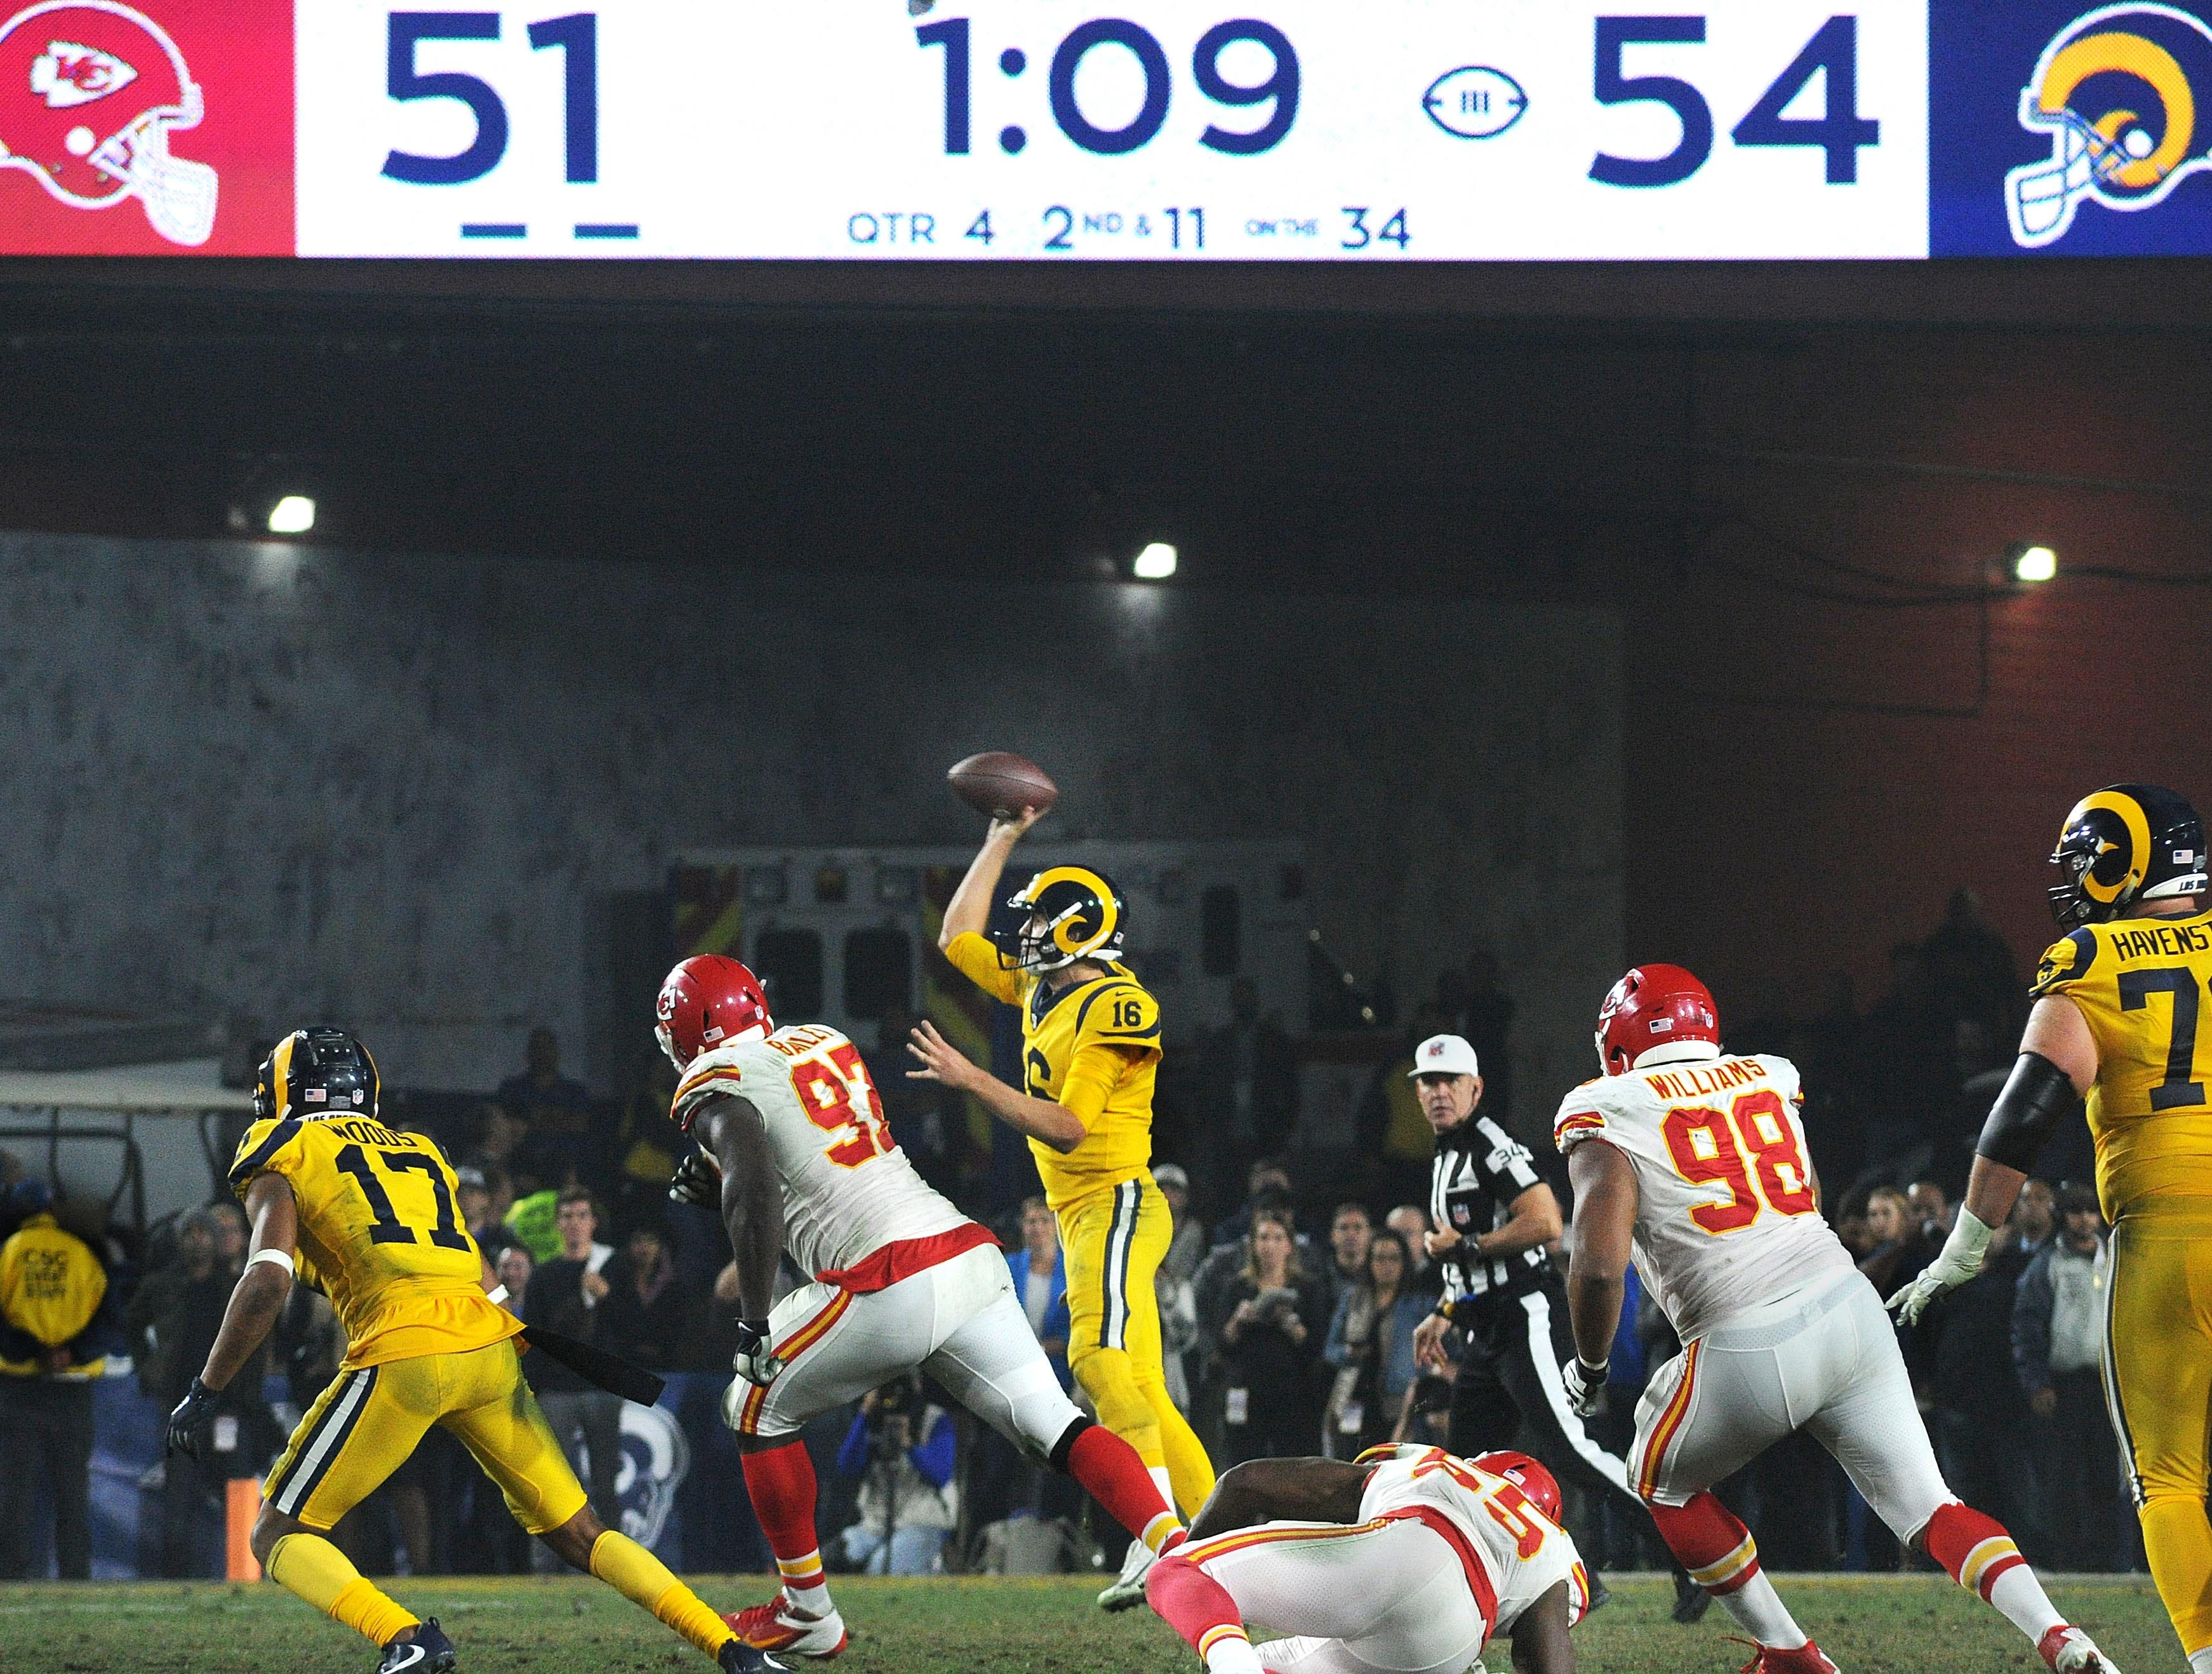 Rams quarterback Jared Goff throws a pass late in the fourth quarter against the Chiefs to win by a score of 54-51 on Monday night.